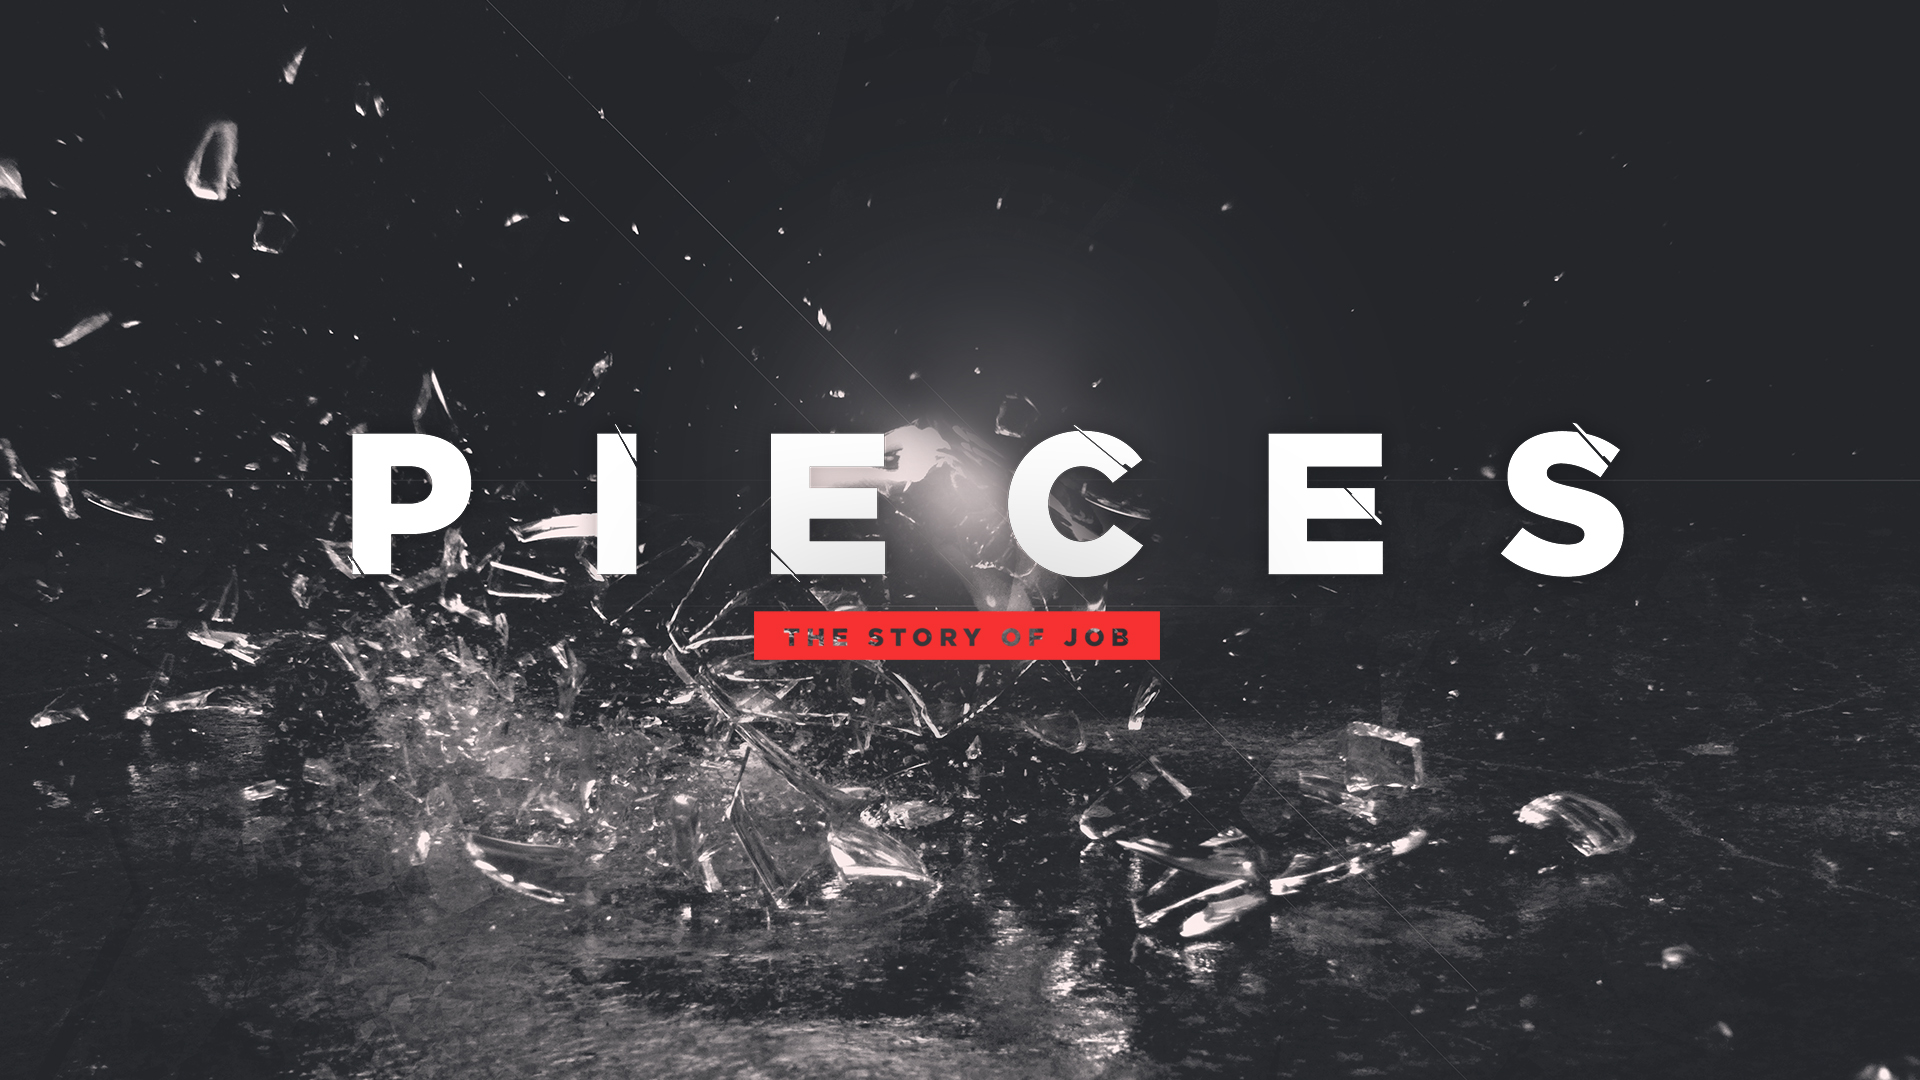 pieces-title-1-Wide 16x9.jpg